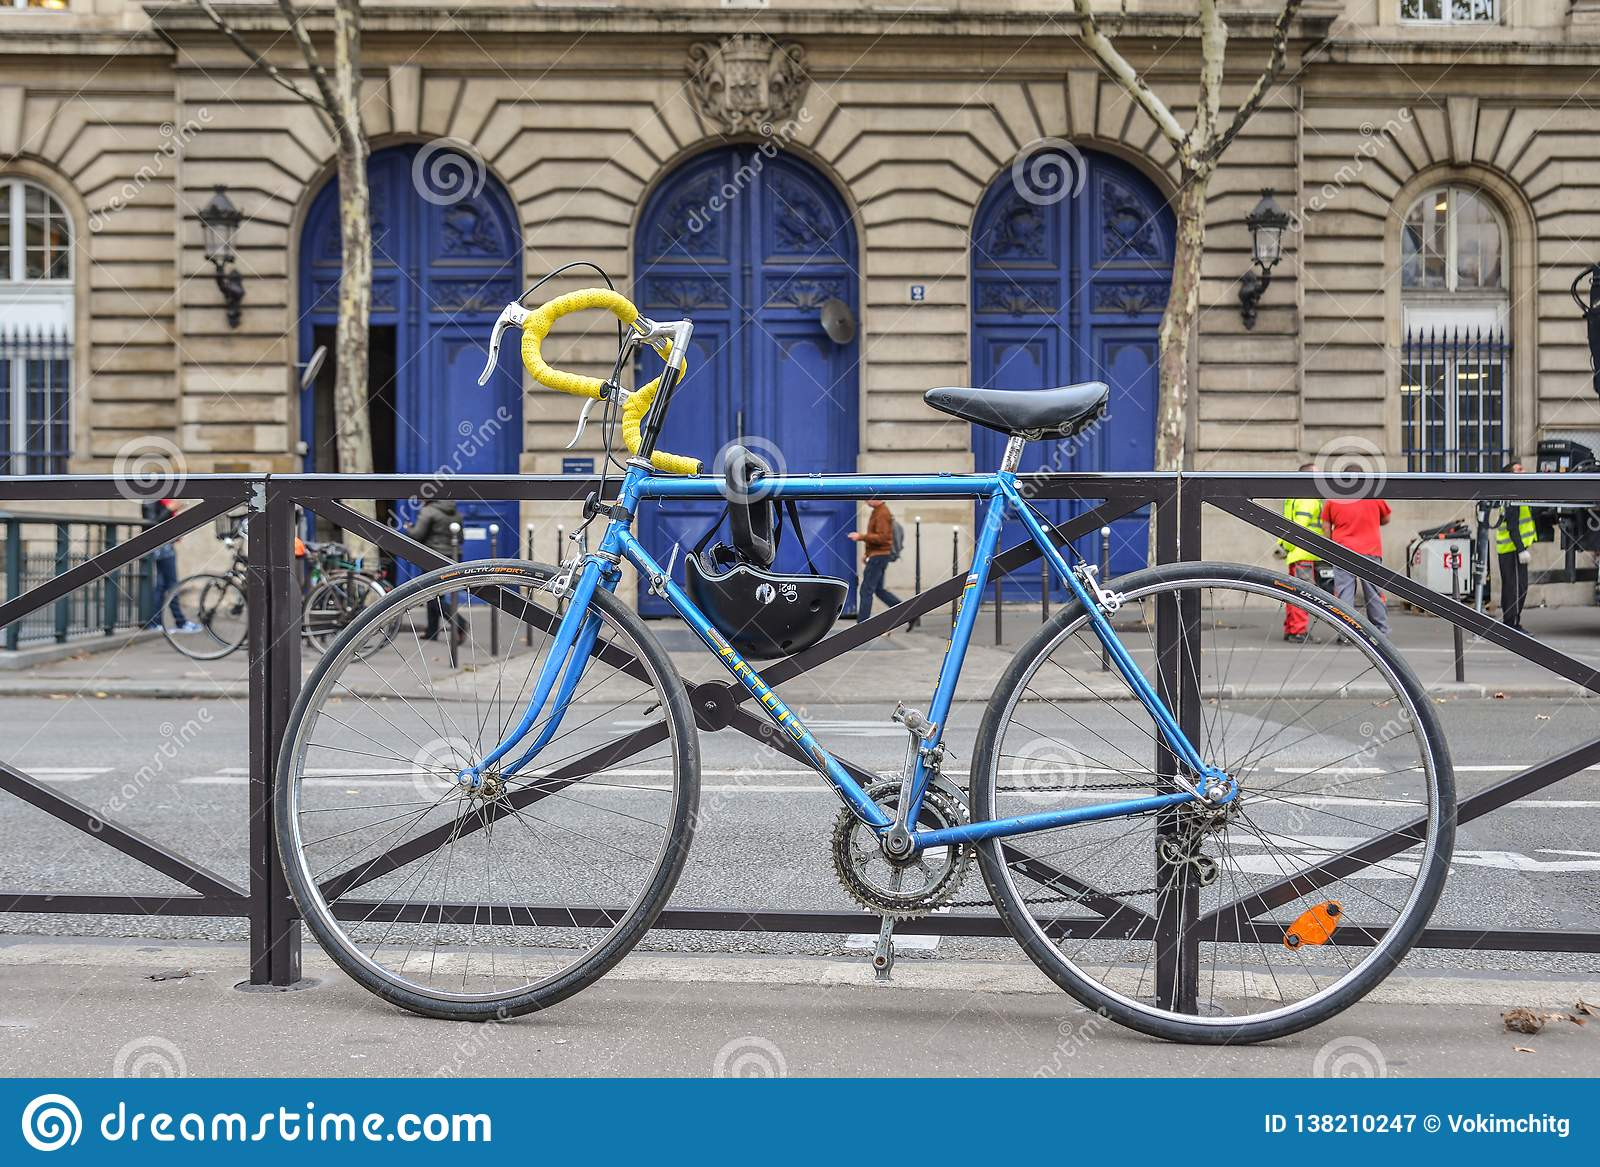 A blue bicycle at downtown in Paris, France